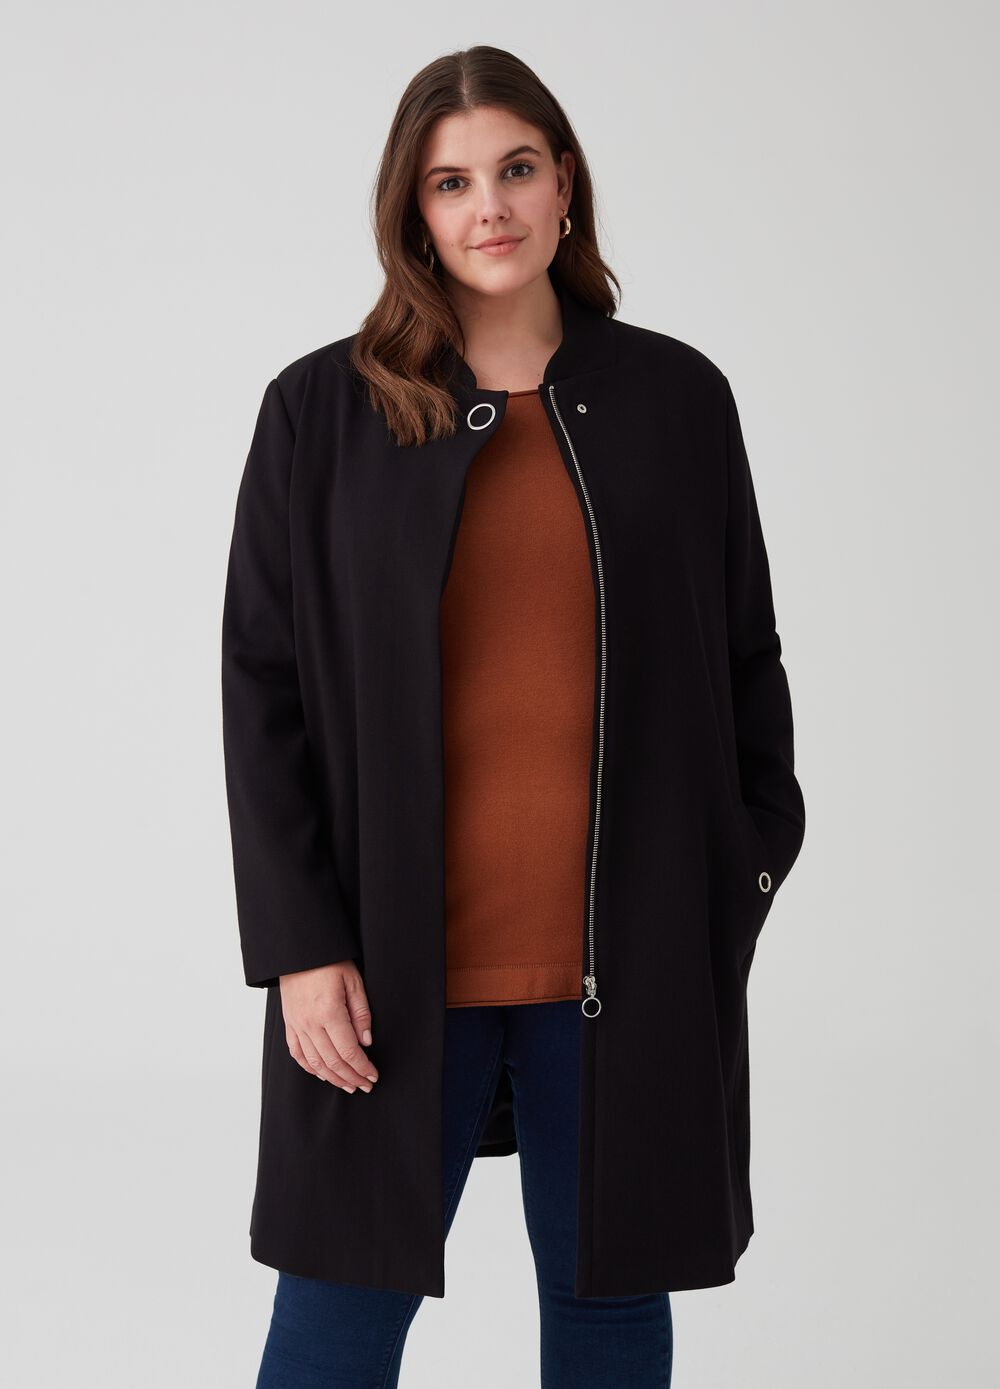 Curvy coat with high neck and pockets